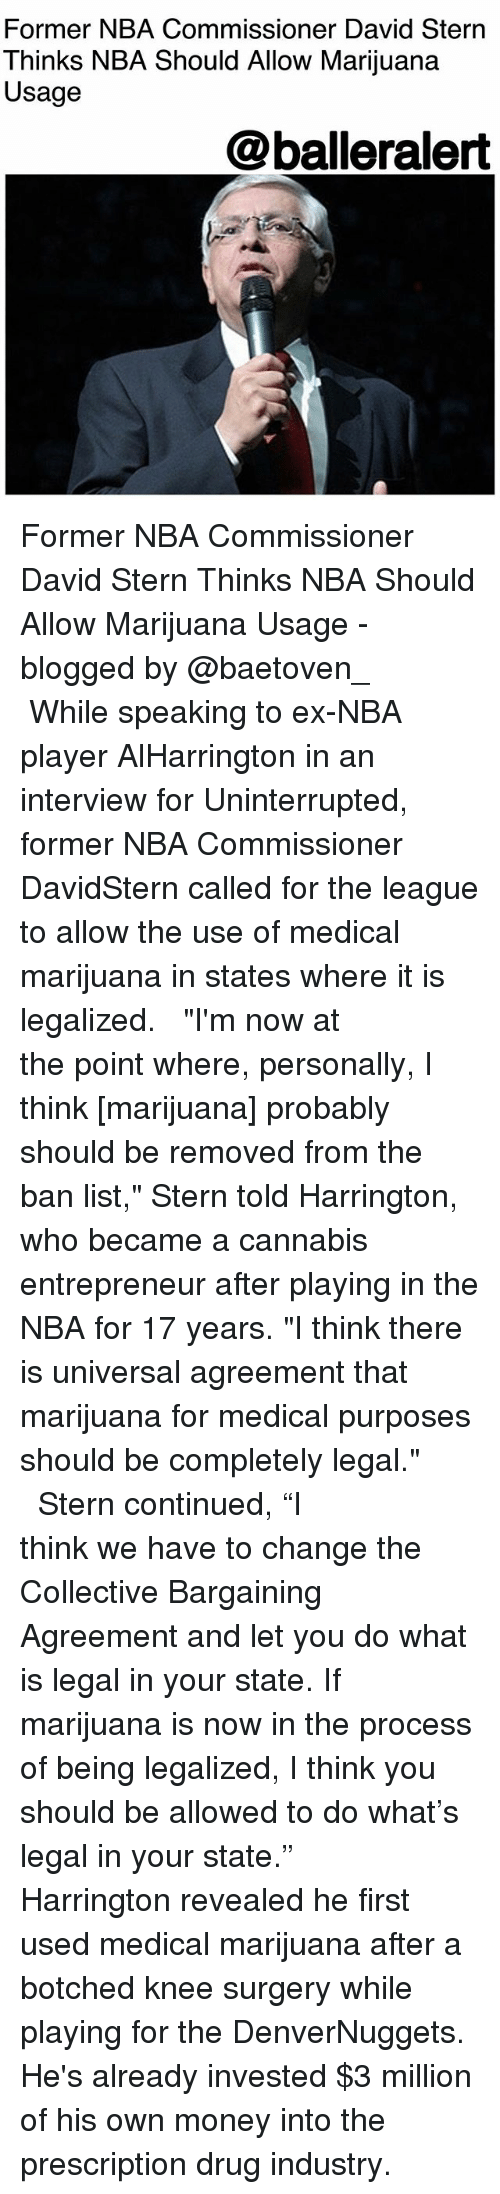 """Memes, Money, and Nba: Former NBA Commissioner David Stern  Thinks NBA Should Allow Marijuana  Usage  @balleralert Former NBA Commissioner David Stern Thinks NBA Should Allow Marijuana Usage - blogged by @baetoven_ ⠀⠀⠀⠀⠀⠀⠀ ⠀⠀⠀⠀⠀⠀⠀ While speaking to ex-NBA player AlHarrington in an interview for Uninterrupted, former NBA Commissioner DavidStern called for the league to allow the use of medical marijuana in states where it is legalized. ⠀⠀⠀⠀⠀⠀⠀ ⠀⠀⠀⠀⠀⠀⠀ """"I'm now at the point where, personally, I think [marijuana] probably should be removed from the ban list,"""" Stern told Harrington, who became a cannabis entrepreneur after playing in the NBA for 17 years. """"I think there is universal agreement that marijuana for medical purposes should be completely legal."""" ⠀⠀⠀⠀⠀⠀⠀ ⠀⠀⠀⠀⠀⠀⠀ Stern continued, """"I think we have to change the Collective Bargaining Agreement and let you do what is legal in your state. If marijuana is now in the process of being legalized, I think you should be allowed to do what's legal in your state."""" ⠀⠀⠀⠀⠀⠀⠀ ⠀⠀⠀⠀⠀⠀⠀ Harrington revealed he first used medical marijuana after a botched knee surgery while playing for the DenverNuggets. He's already invested $3 million of his own money into the prescription drug industry."""